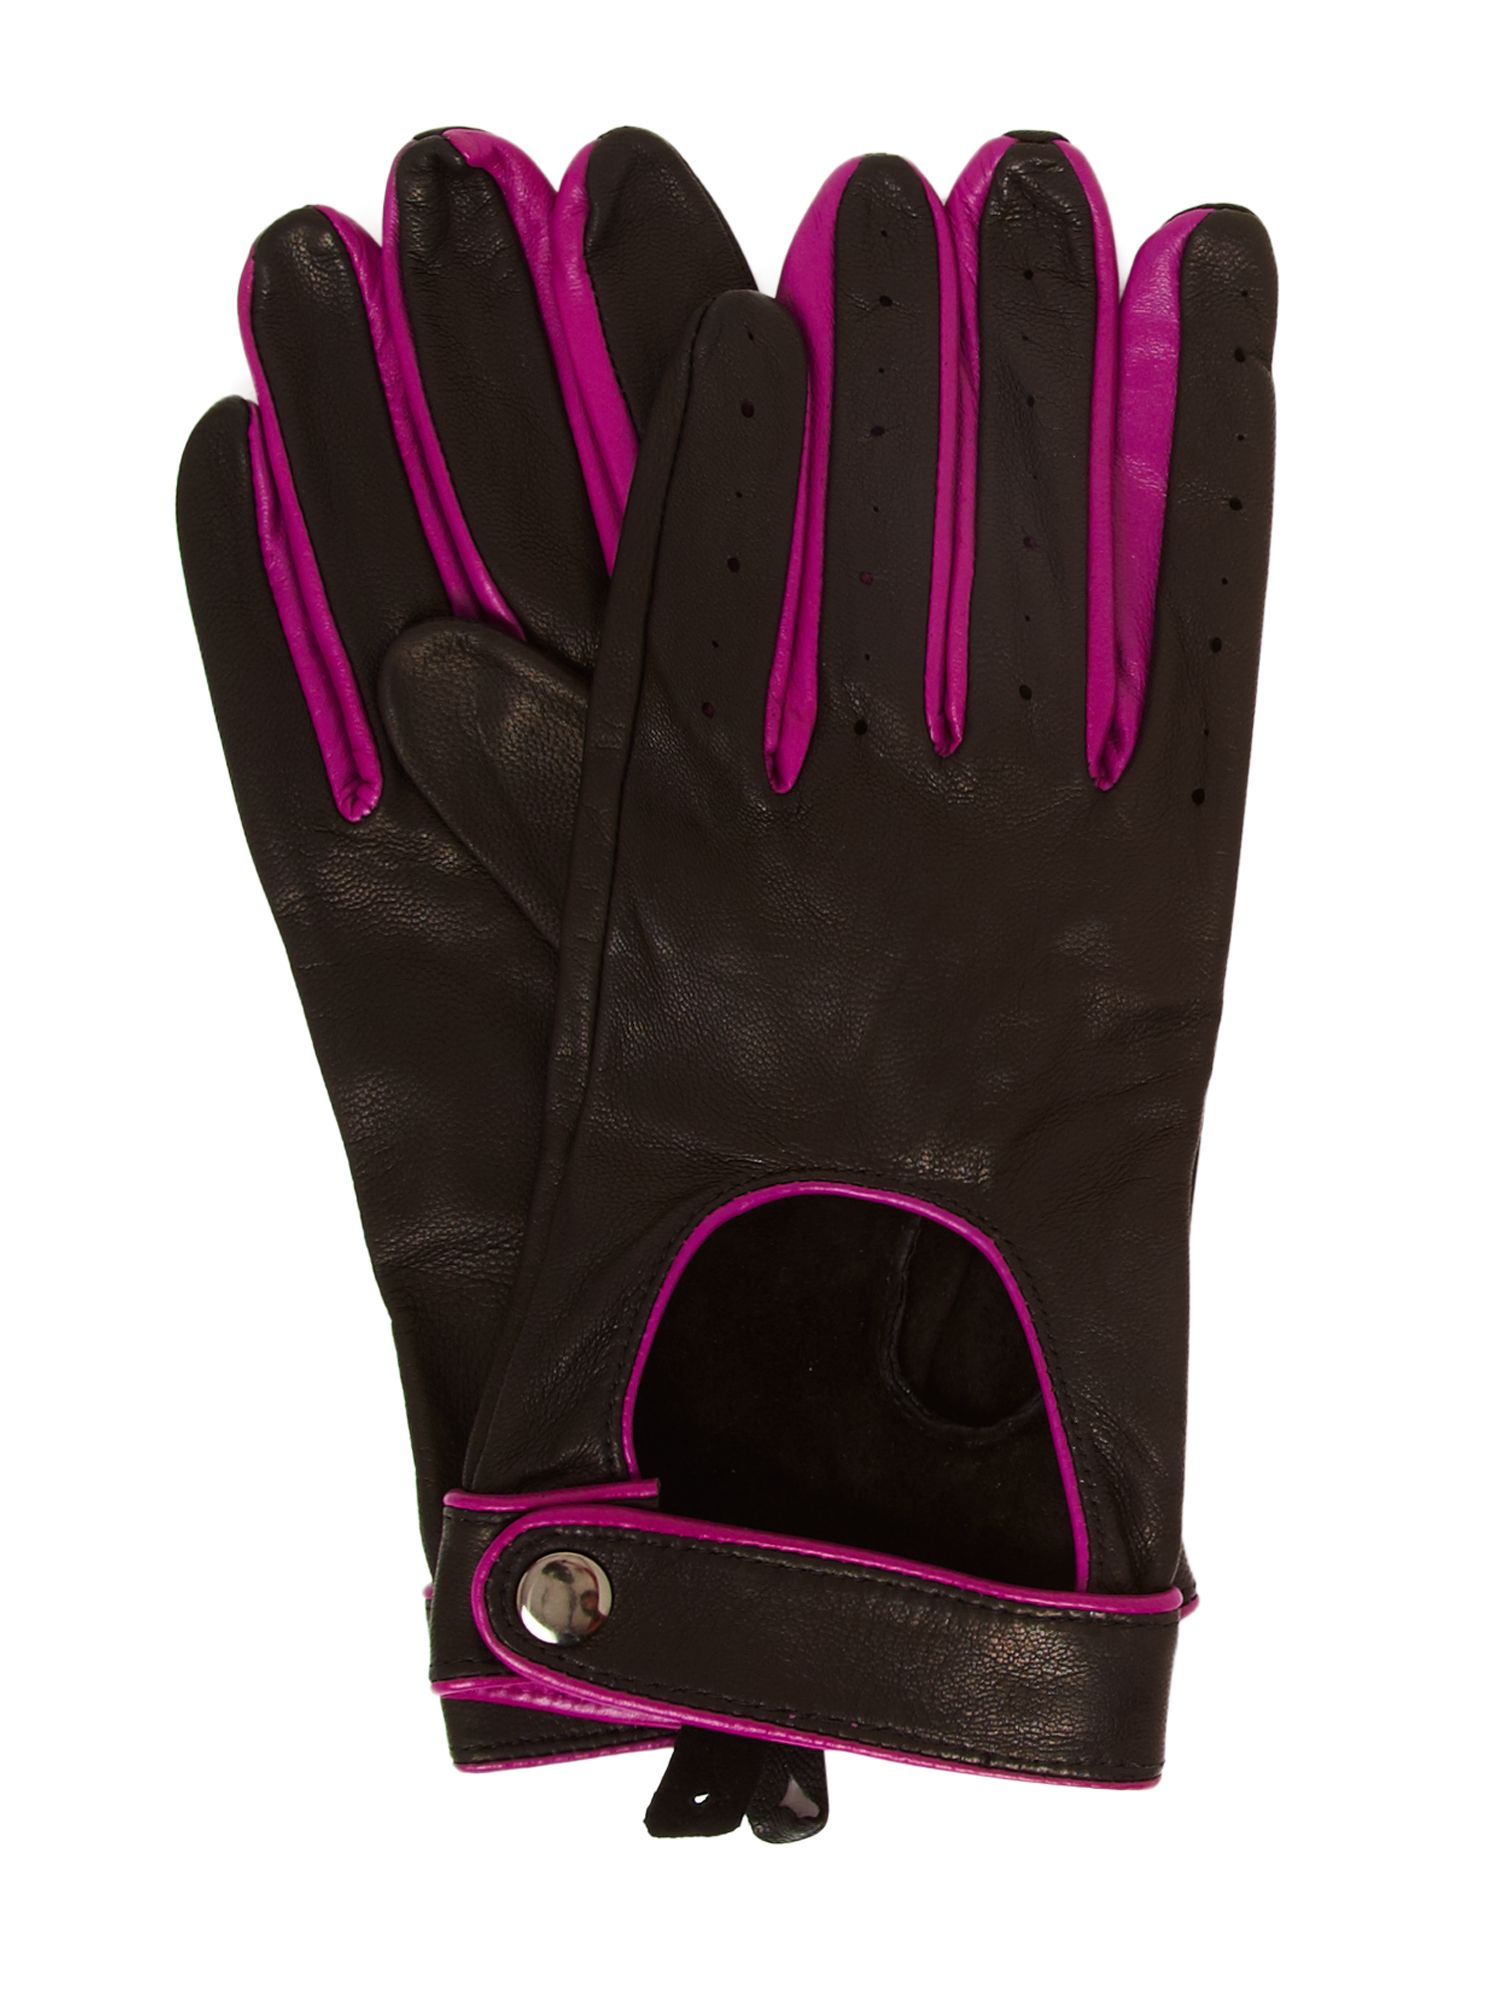 Lucy leather driving gloves